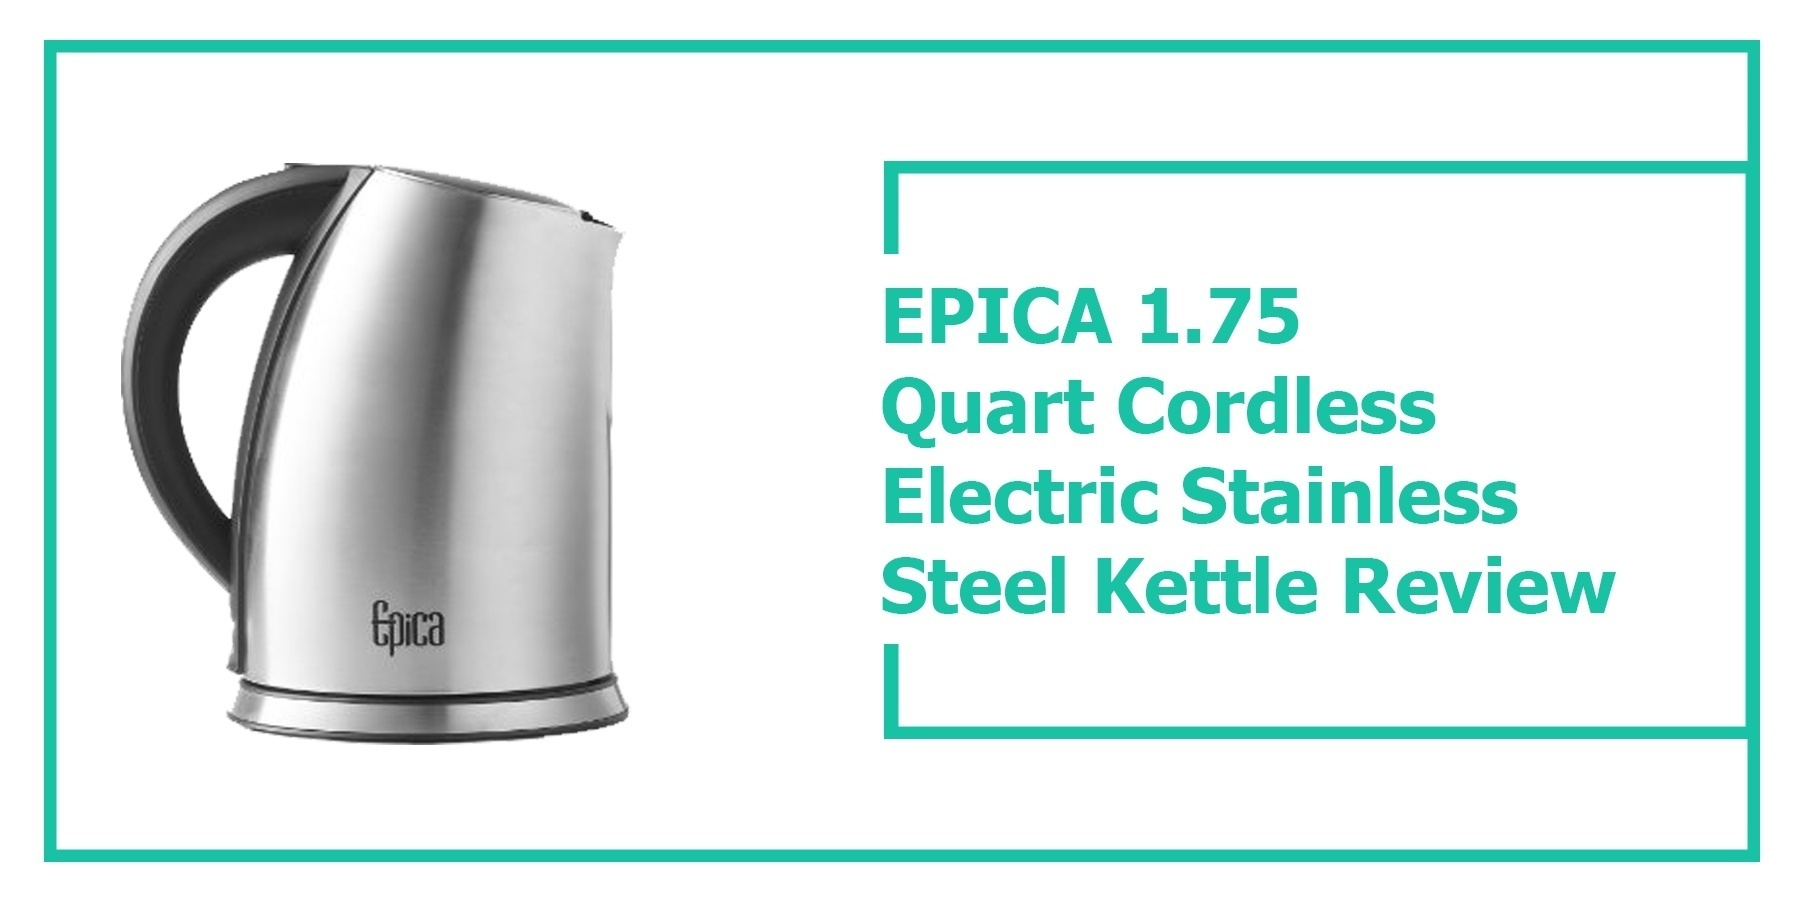 EPICA 1.75 Quart Cordless Electric Stainless Steel Kettle Review